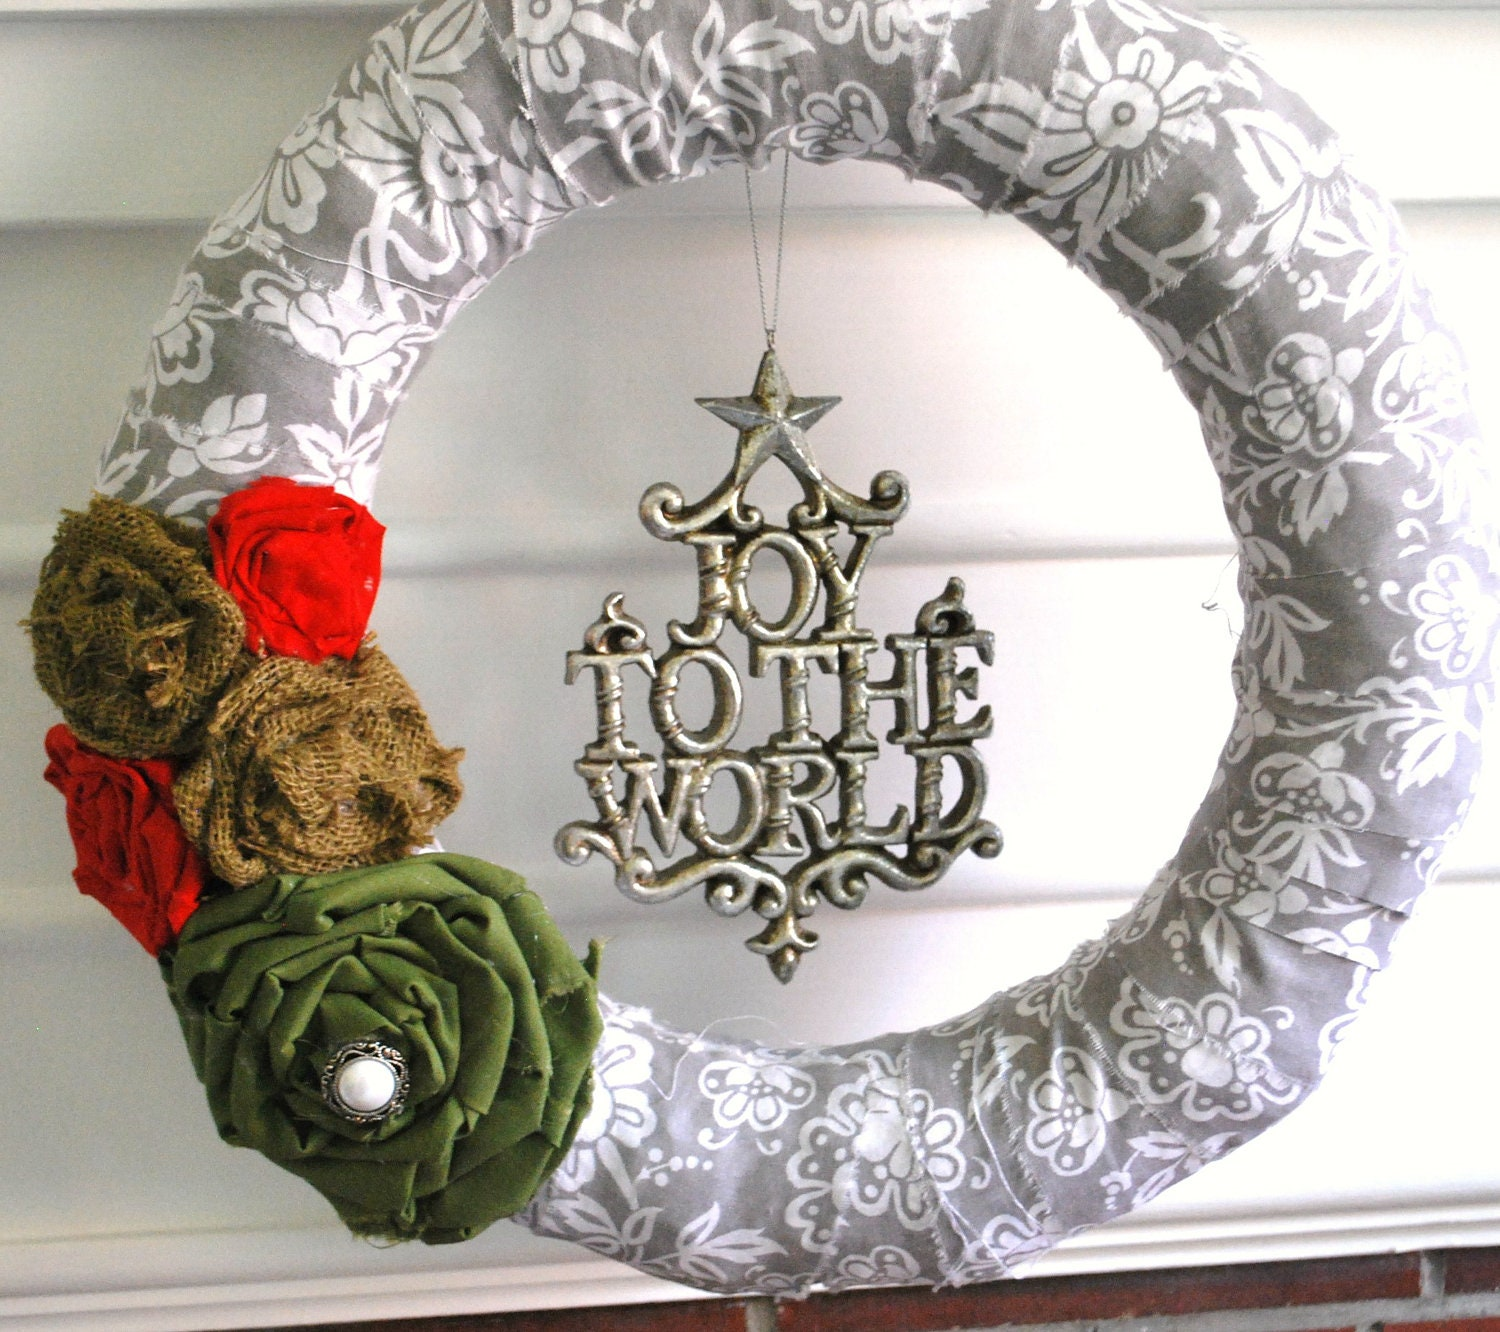 Christmas fabric covered wreath-Joy to the World